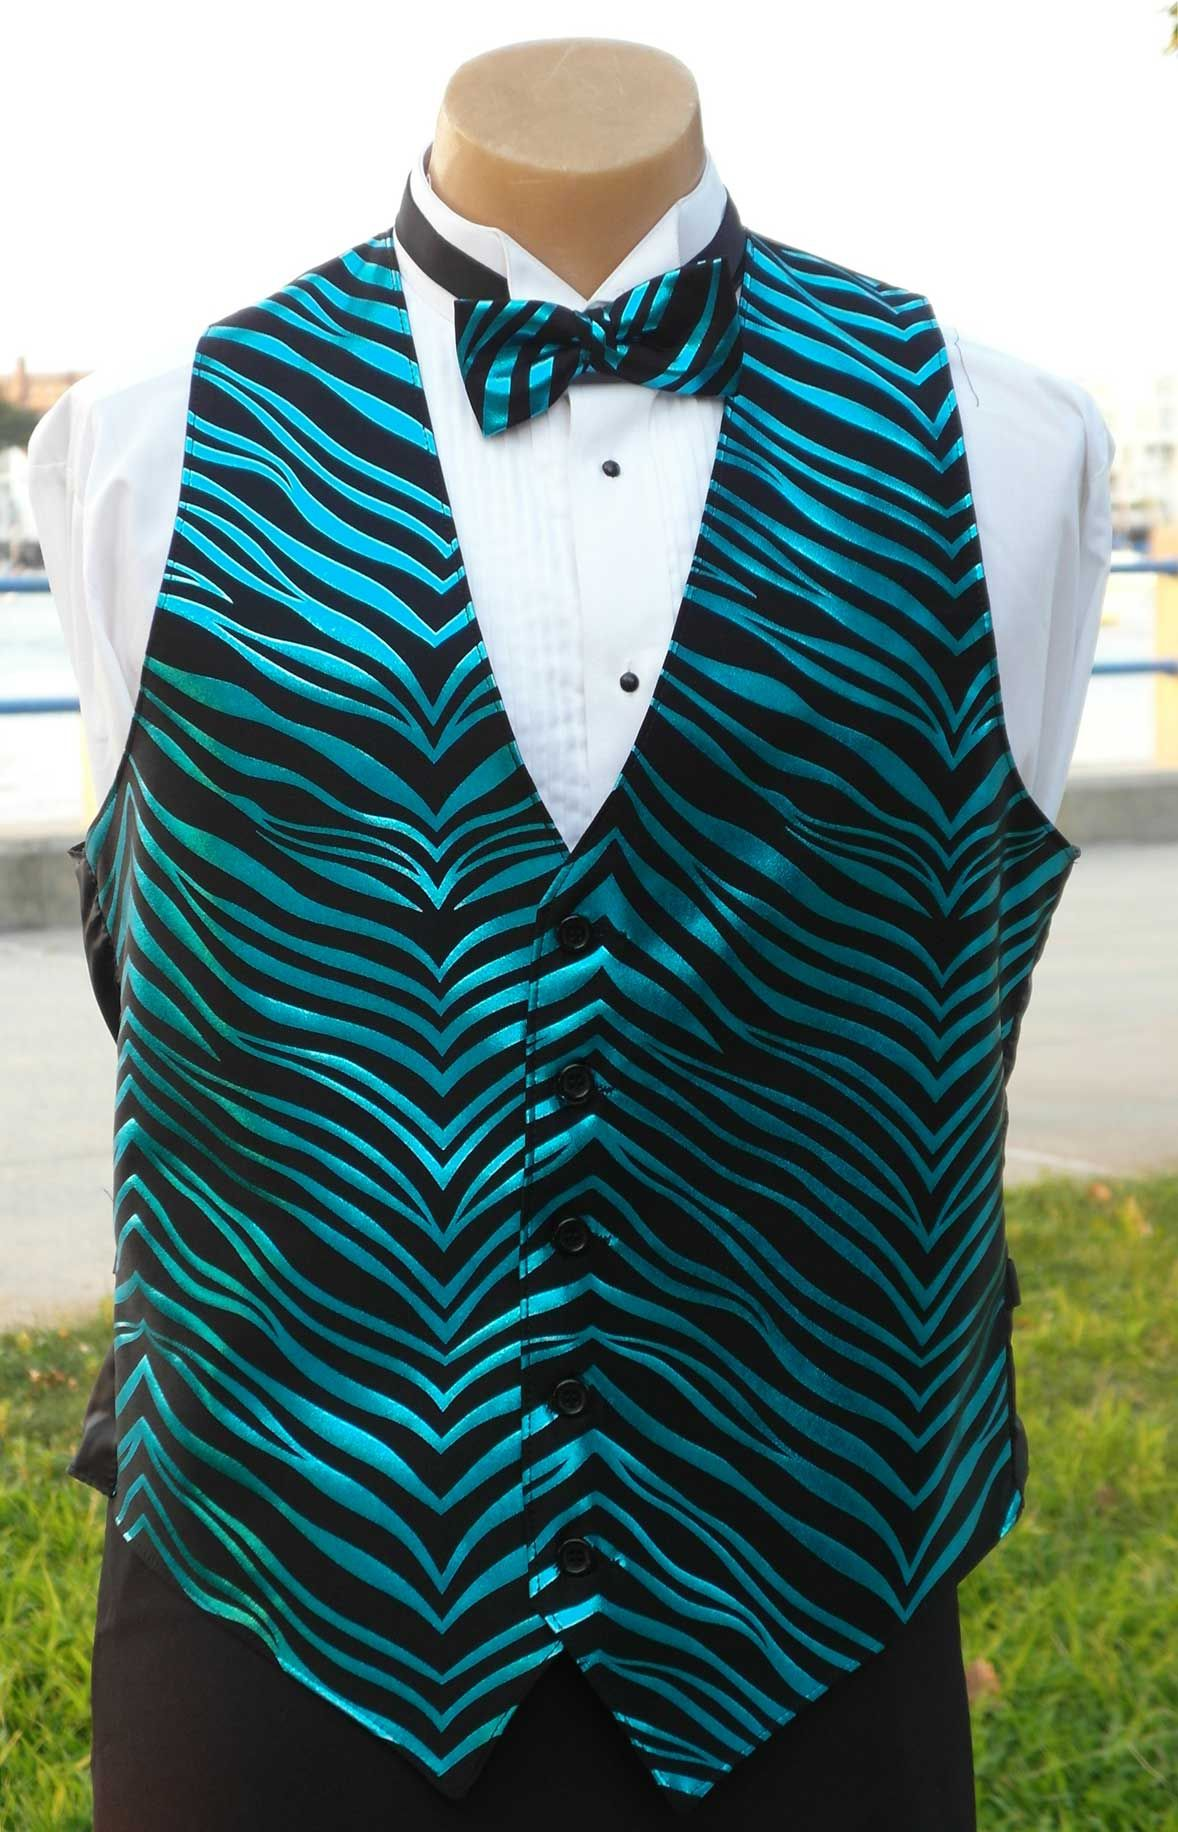 zebra print and turquoise vest for men www.sixstaruniforms.com ...